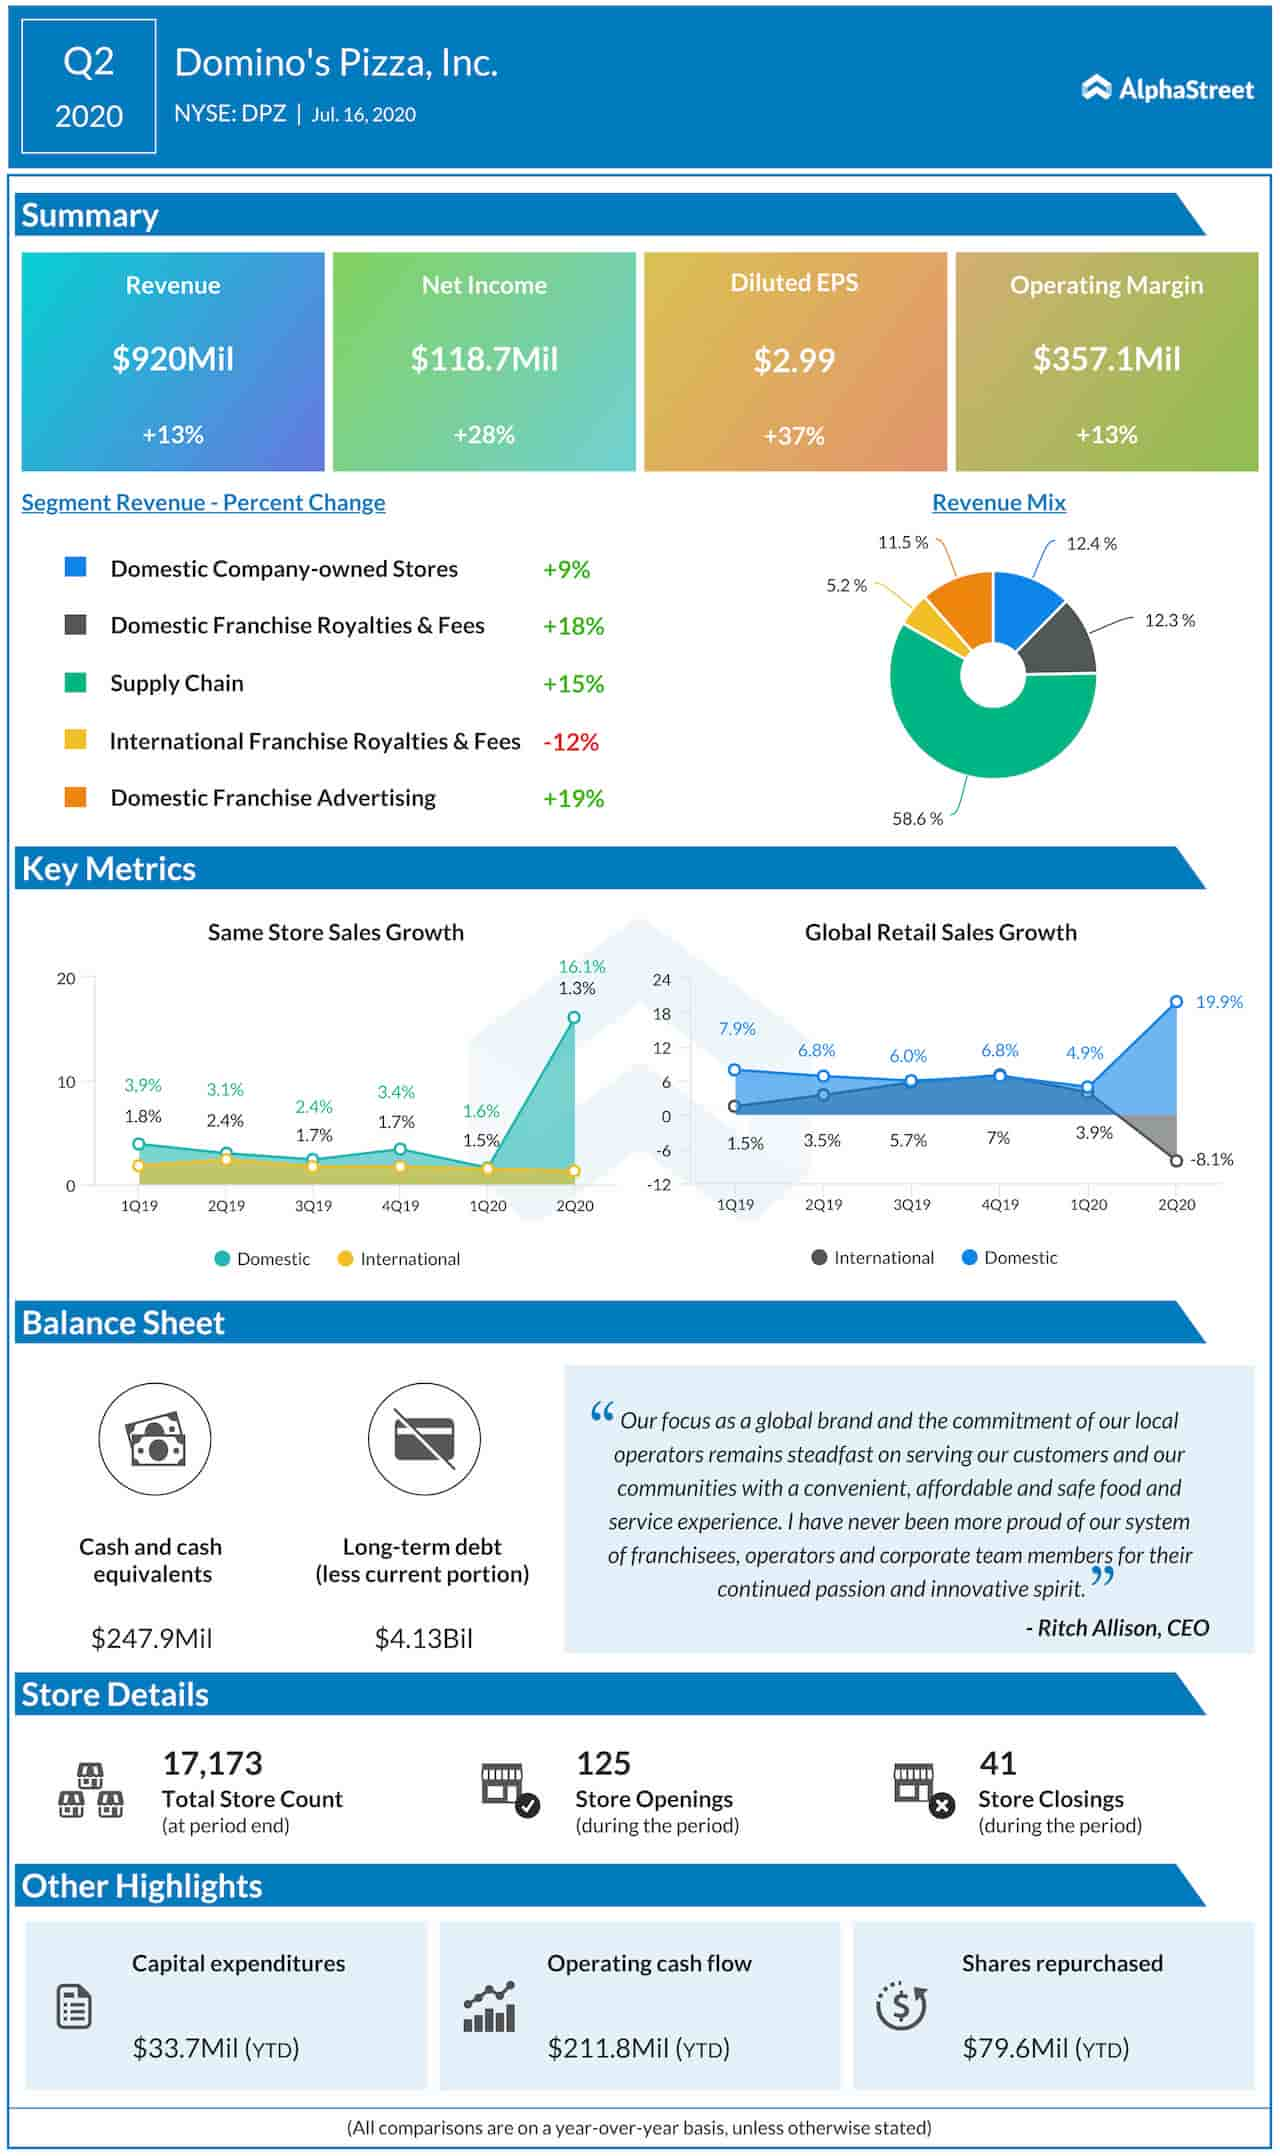 Domino's Pizza Q2 2020 Earnings Infographic